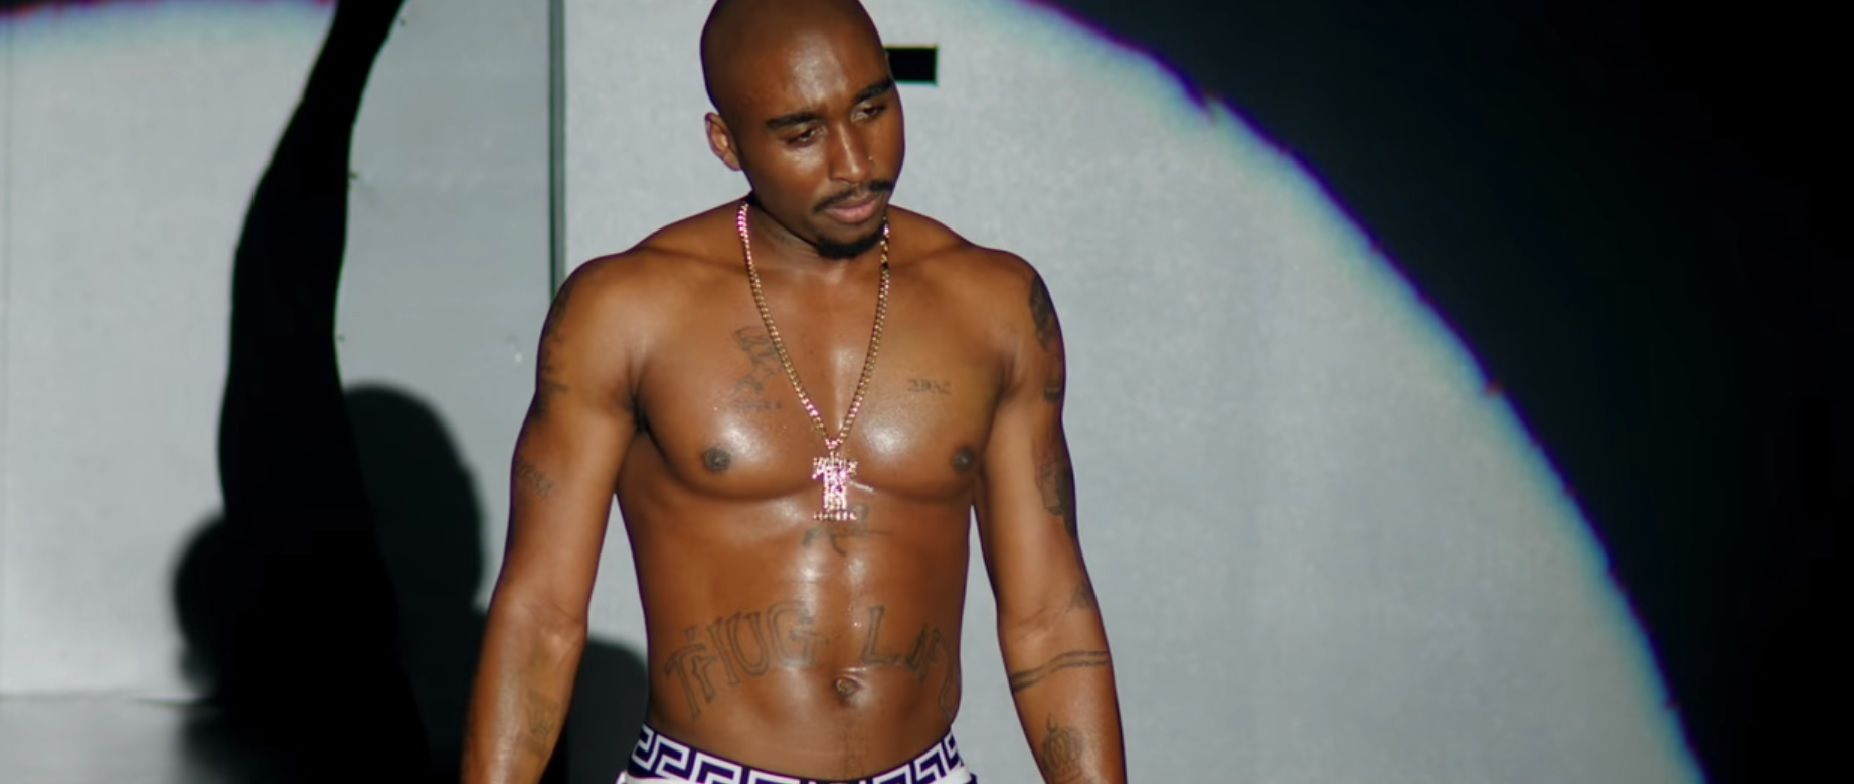 Tupac Shakur biopic - All Eyez On Me